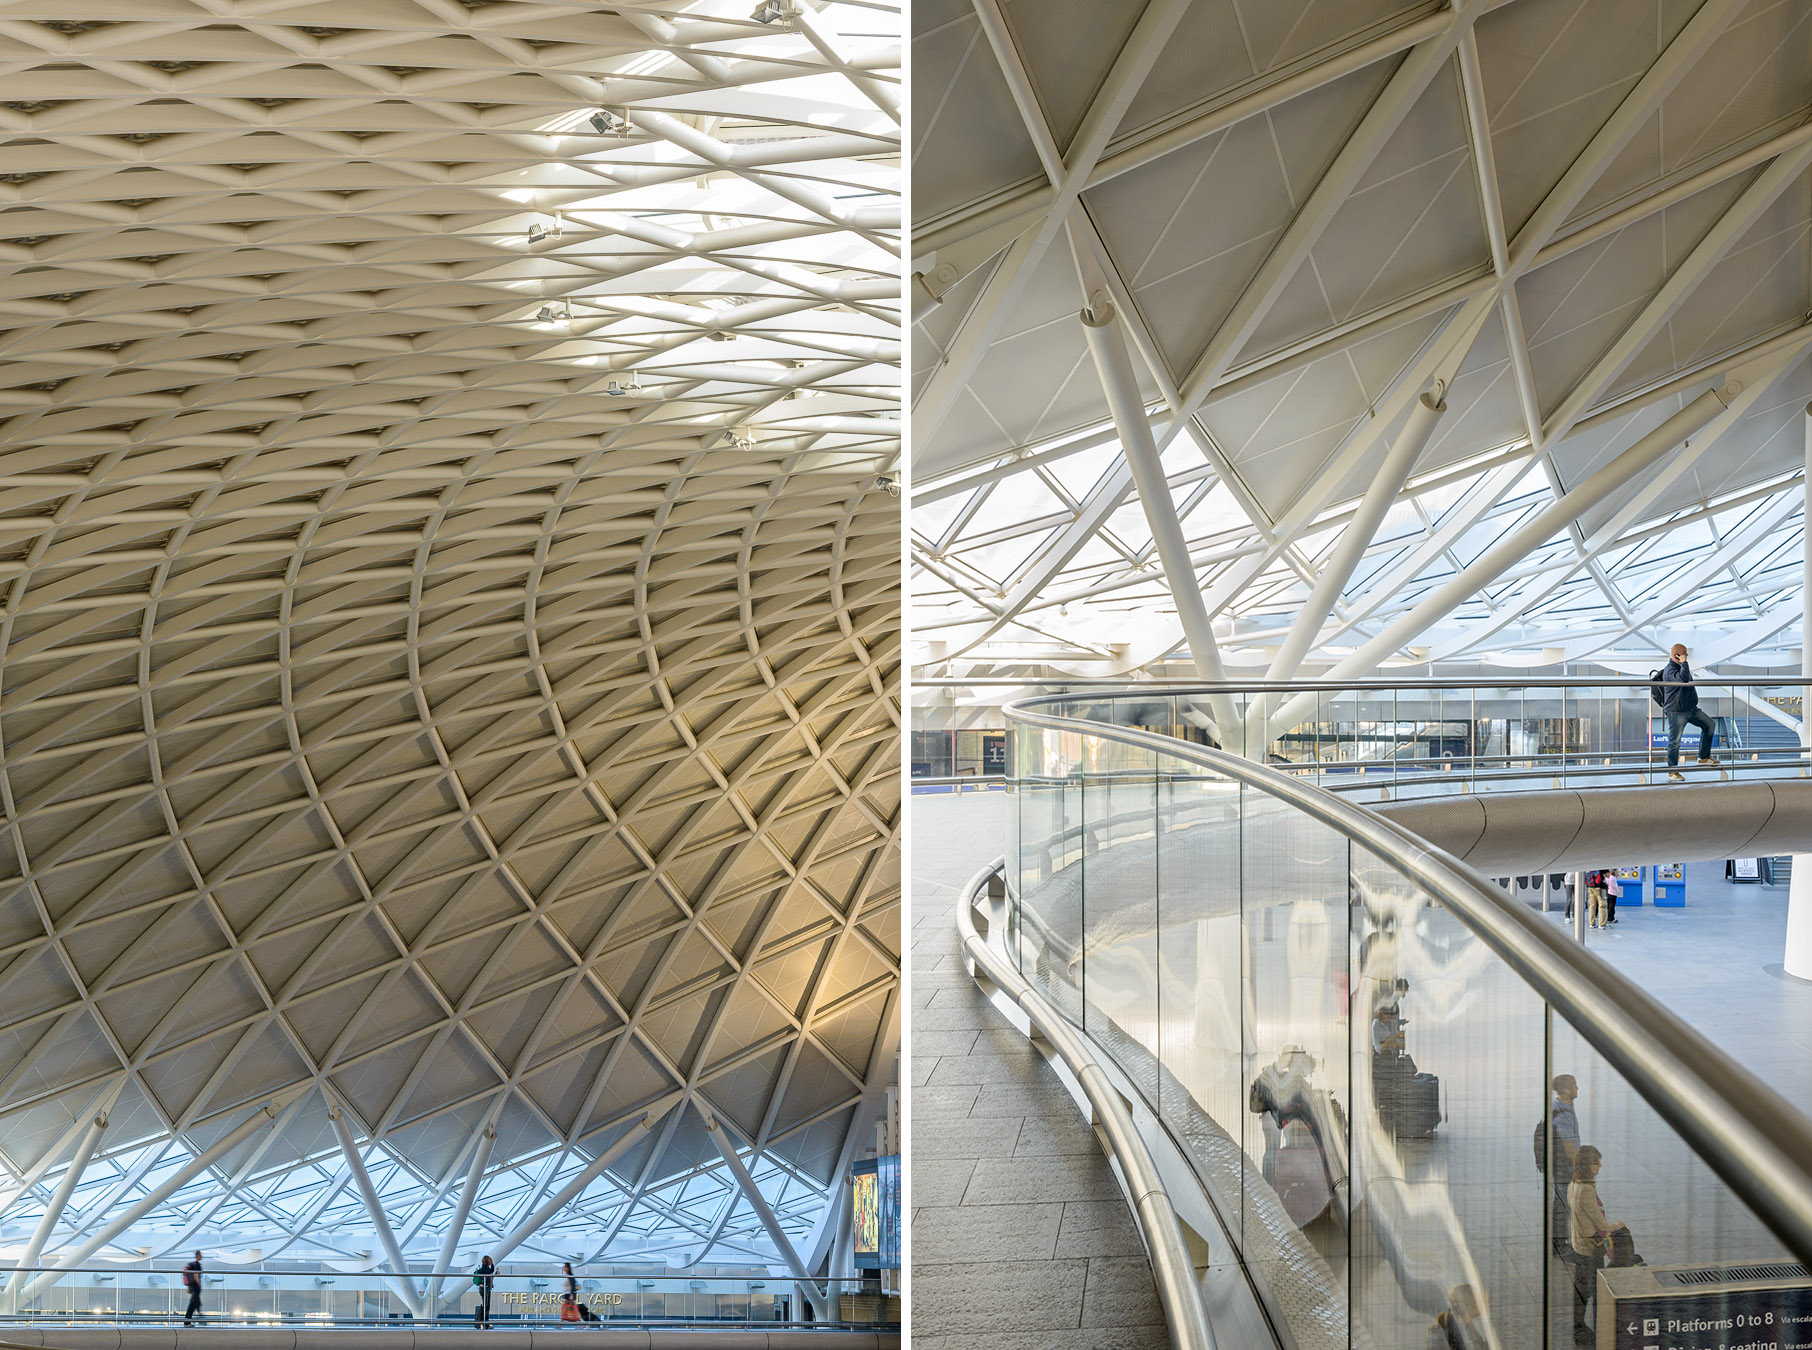 50-doublespace-architectural-photography-london-Kings-Cross-Station-McAslan-copy.jpg